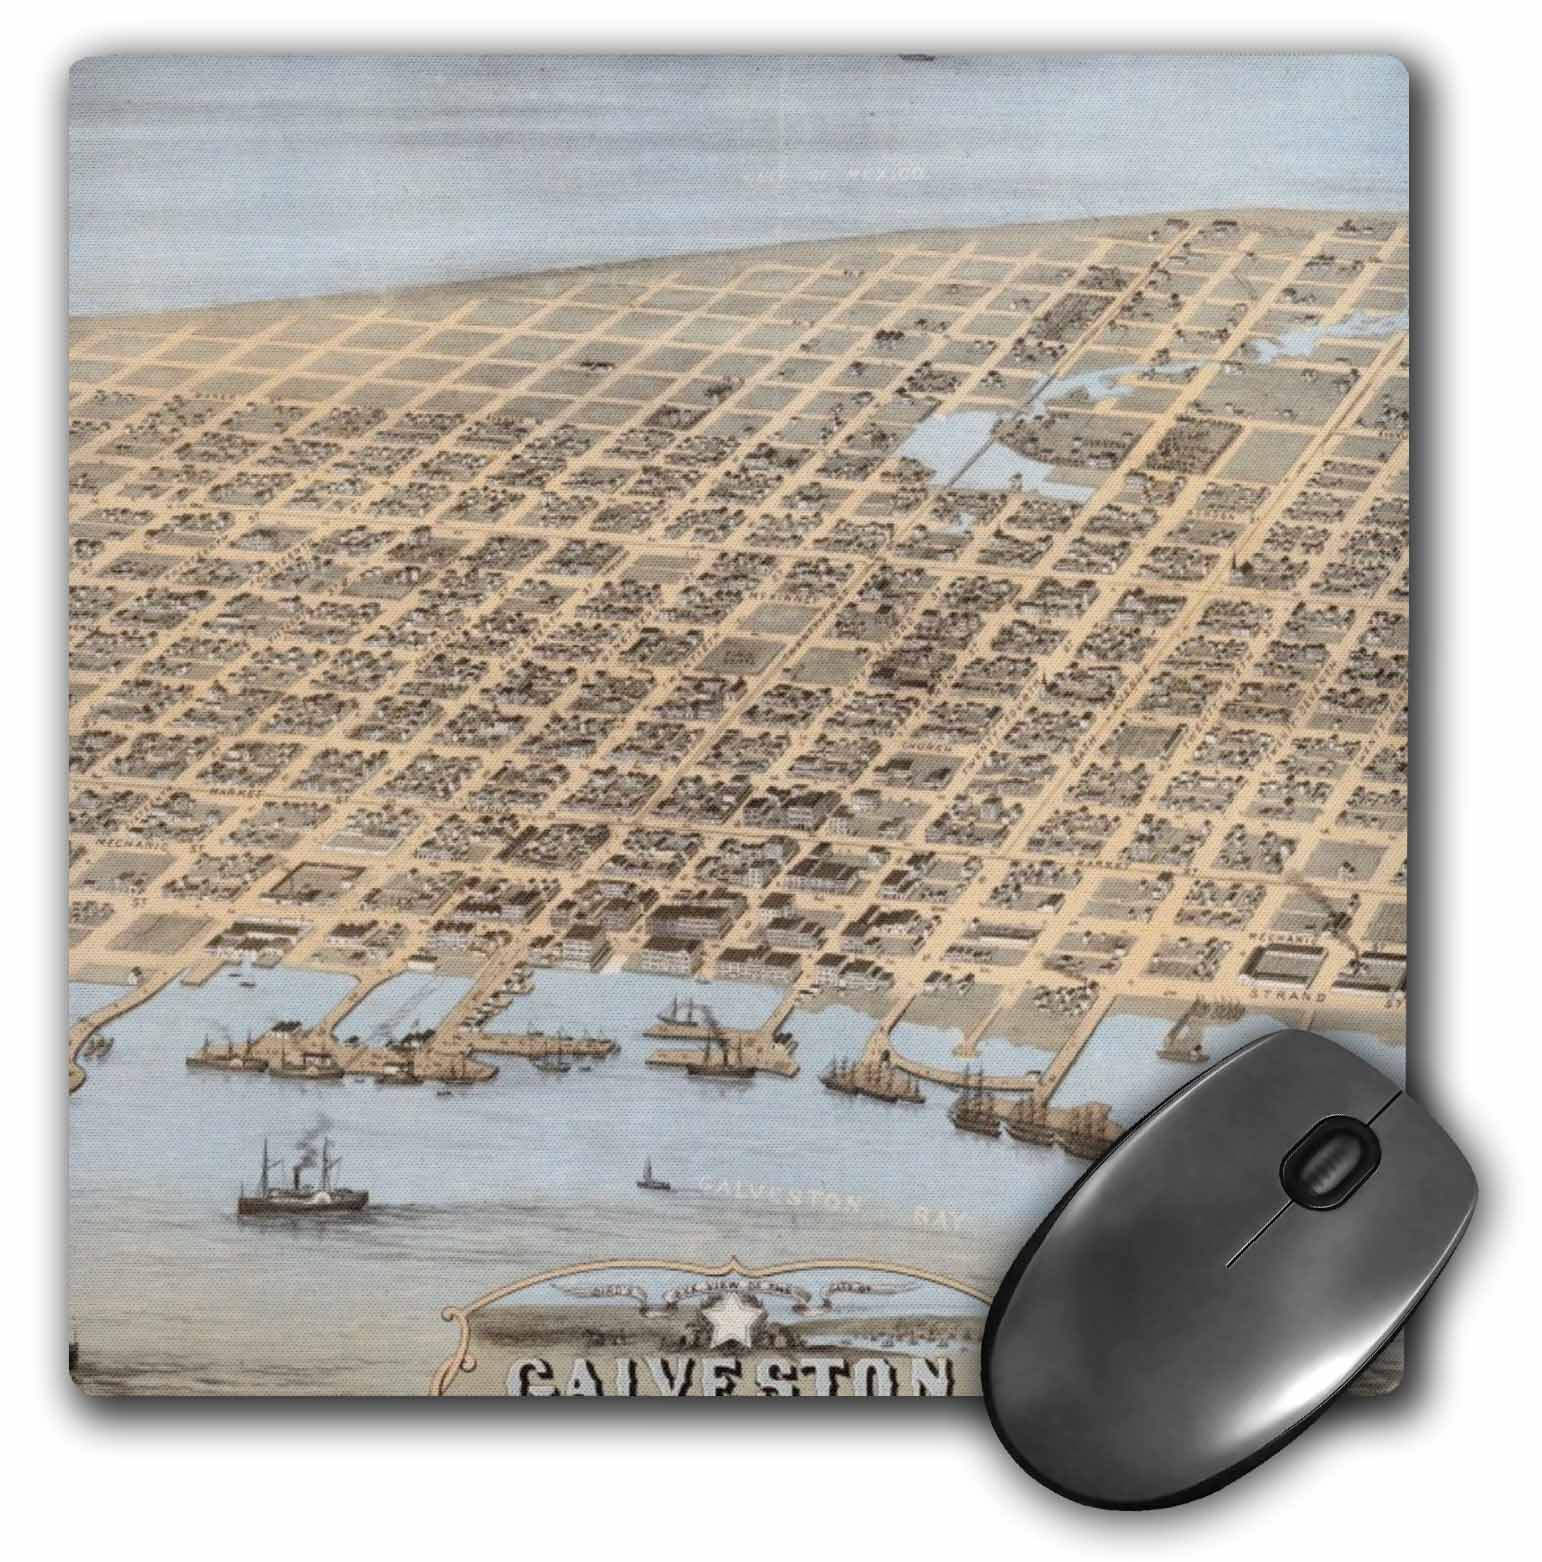 3dRose Galveston, Mouse Pad, 8 by 8 inches by 3dRose